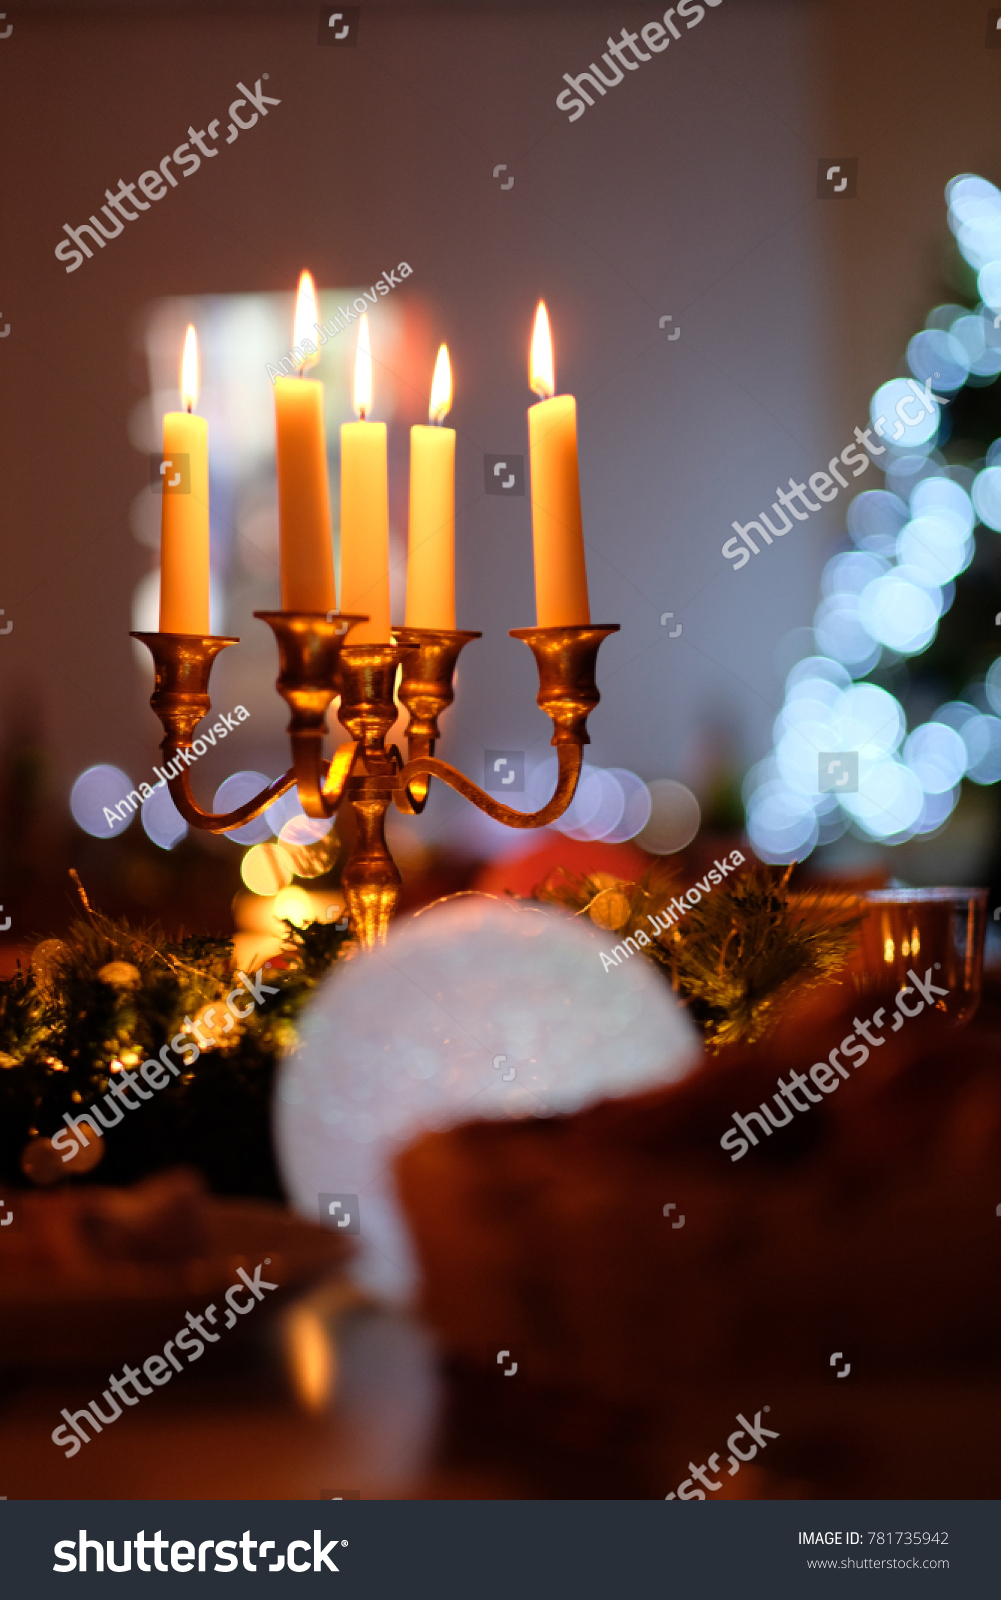 five burning candles in a candelabra among the christmas decor and lights